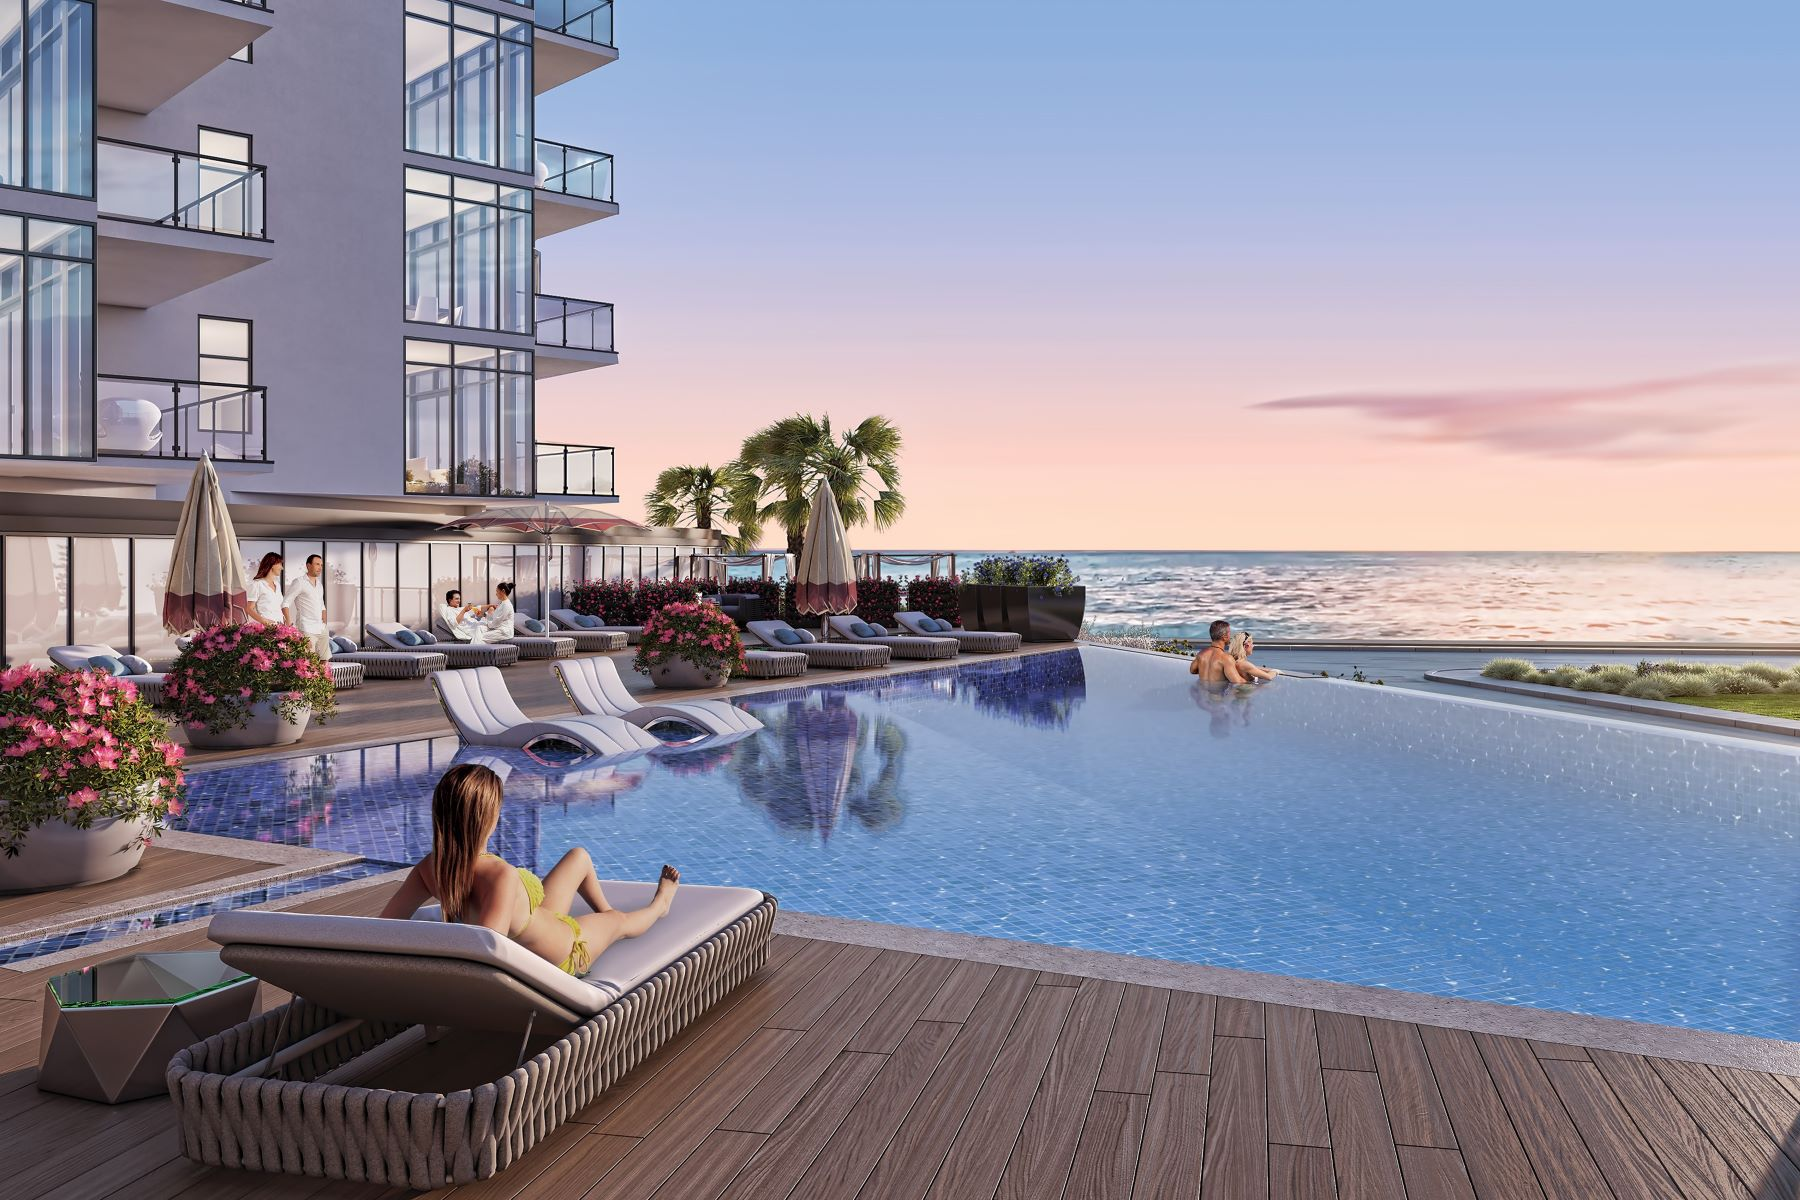 Additional photo for property listing at South Beach at Long Branch 350 Ocean Avenue 407, Long Branch, 新澤西州 07740 美國